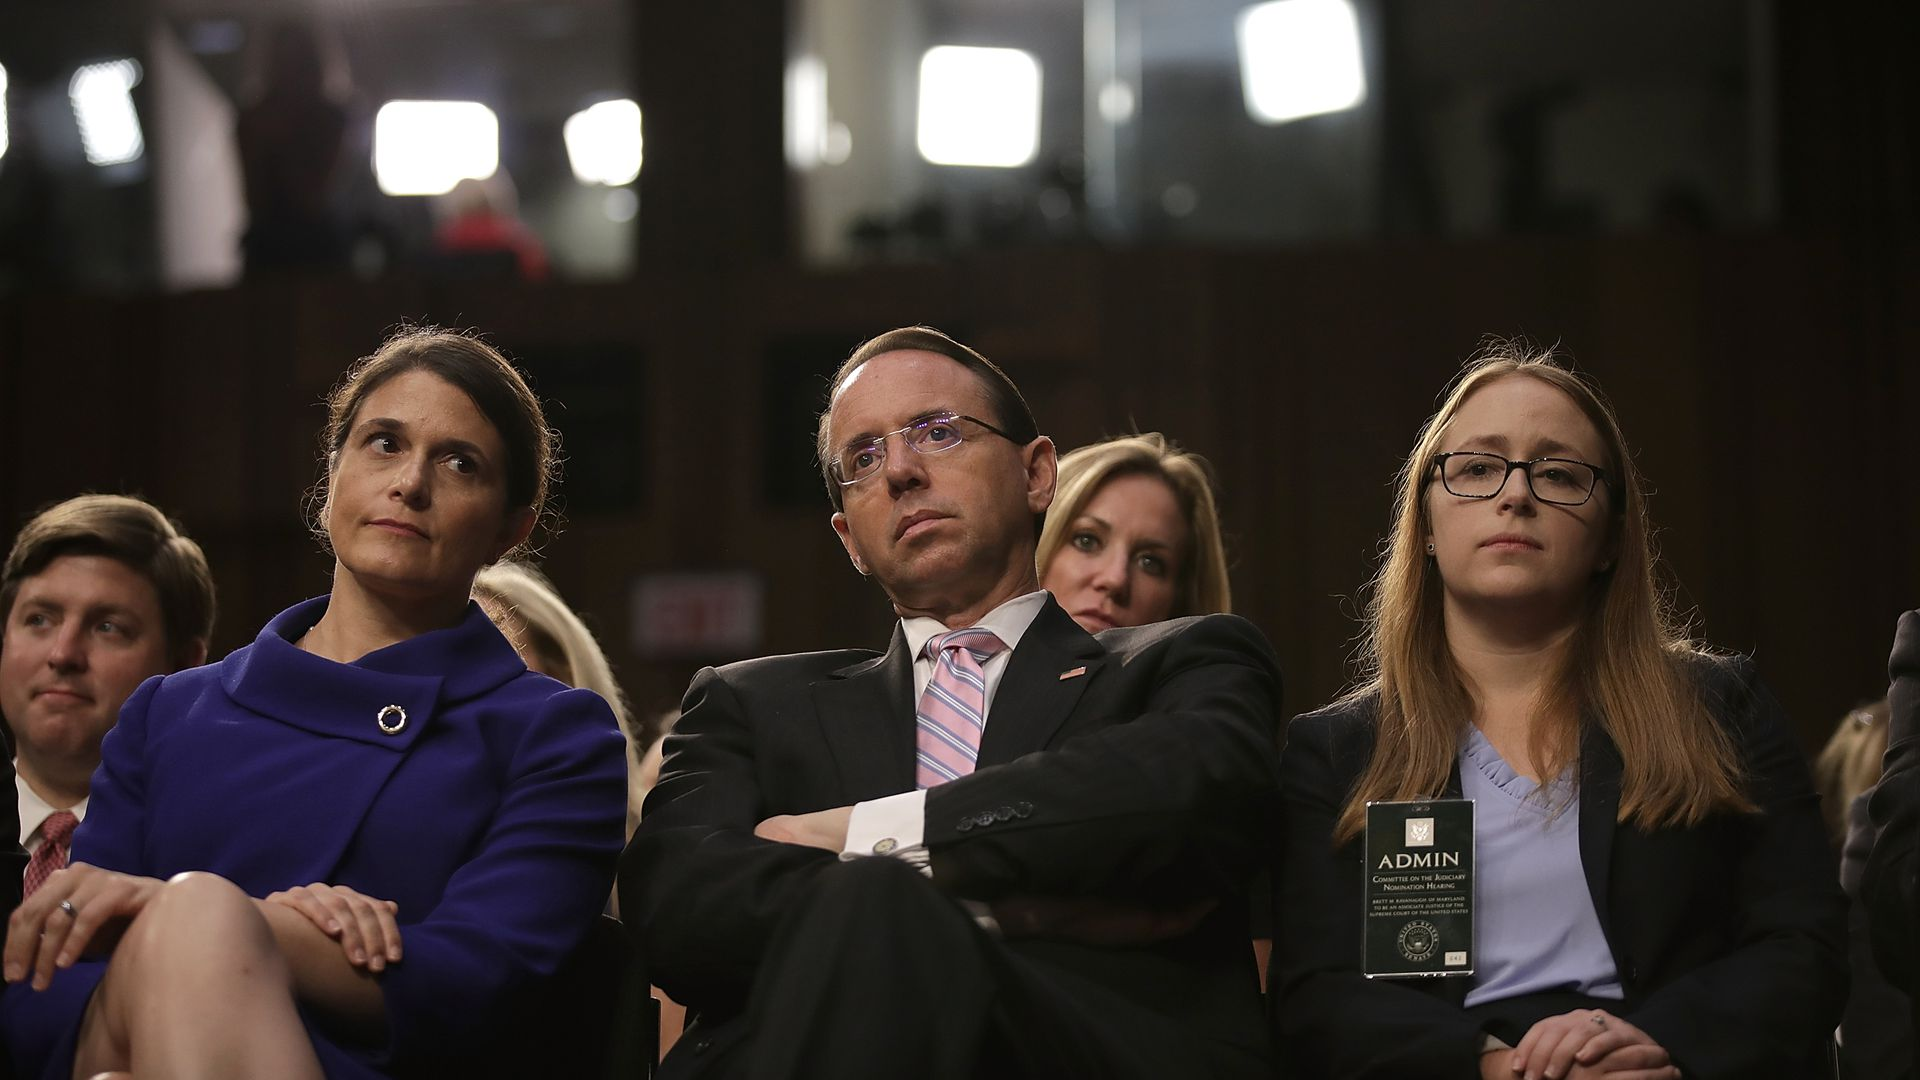 Deputy Attorney General Rod Rosenstein sitting in a hearing with his arms crossed leaning backwards.